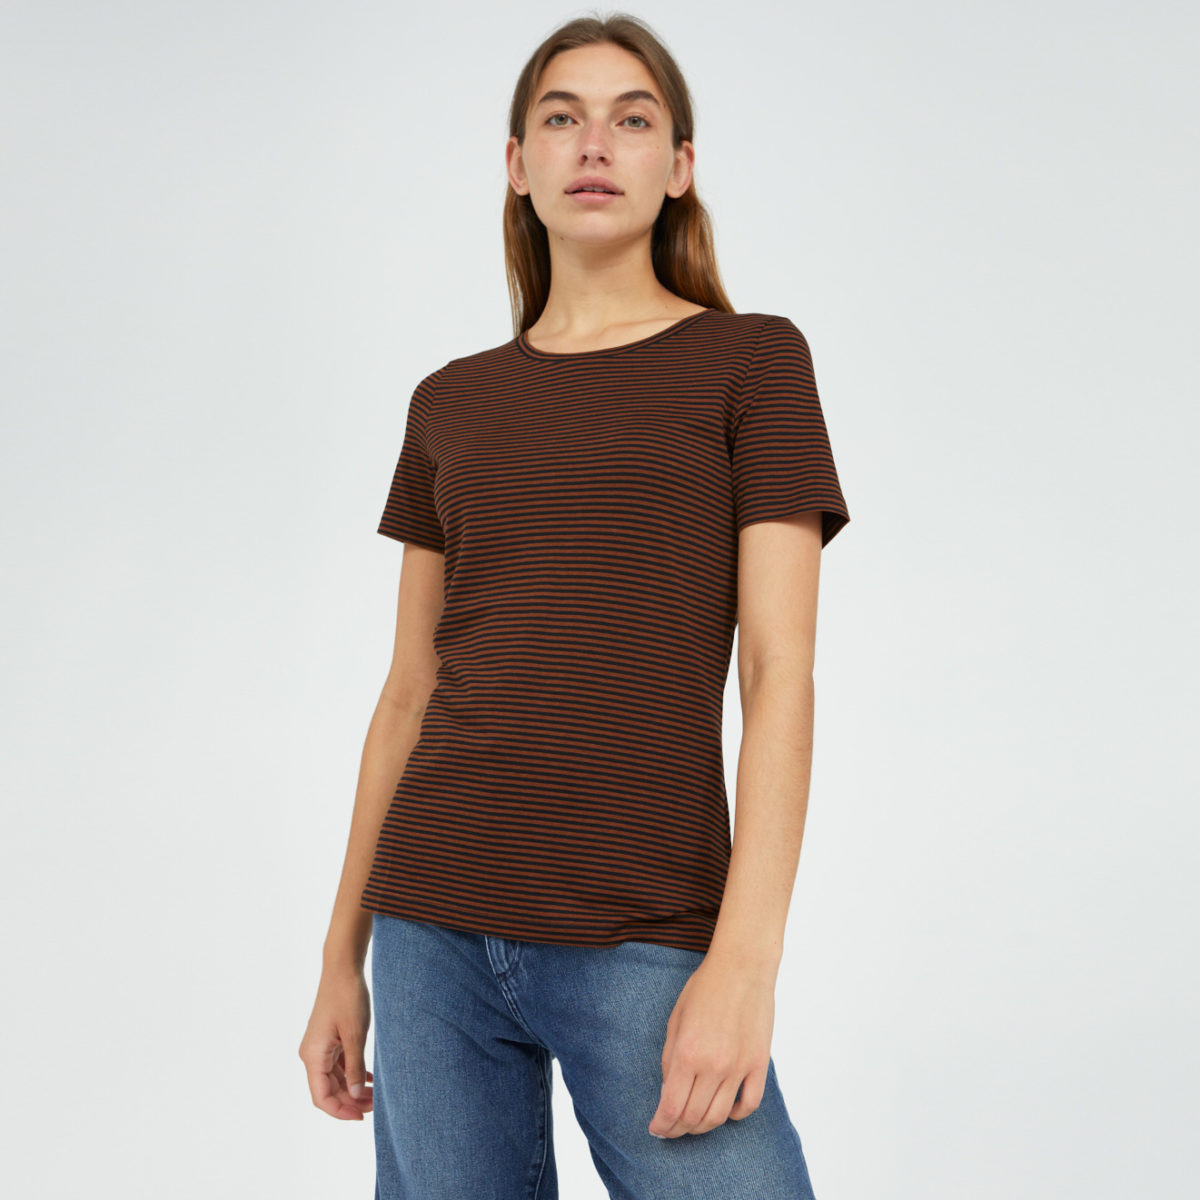 LIDIAA RING STRIPES T-Shirt made of TENCEL™ Lyocell Mix